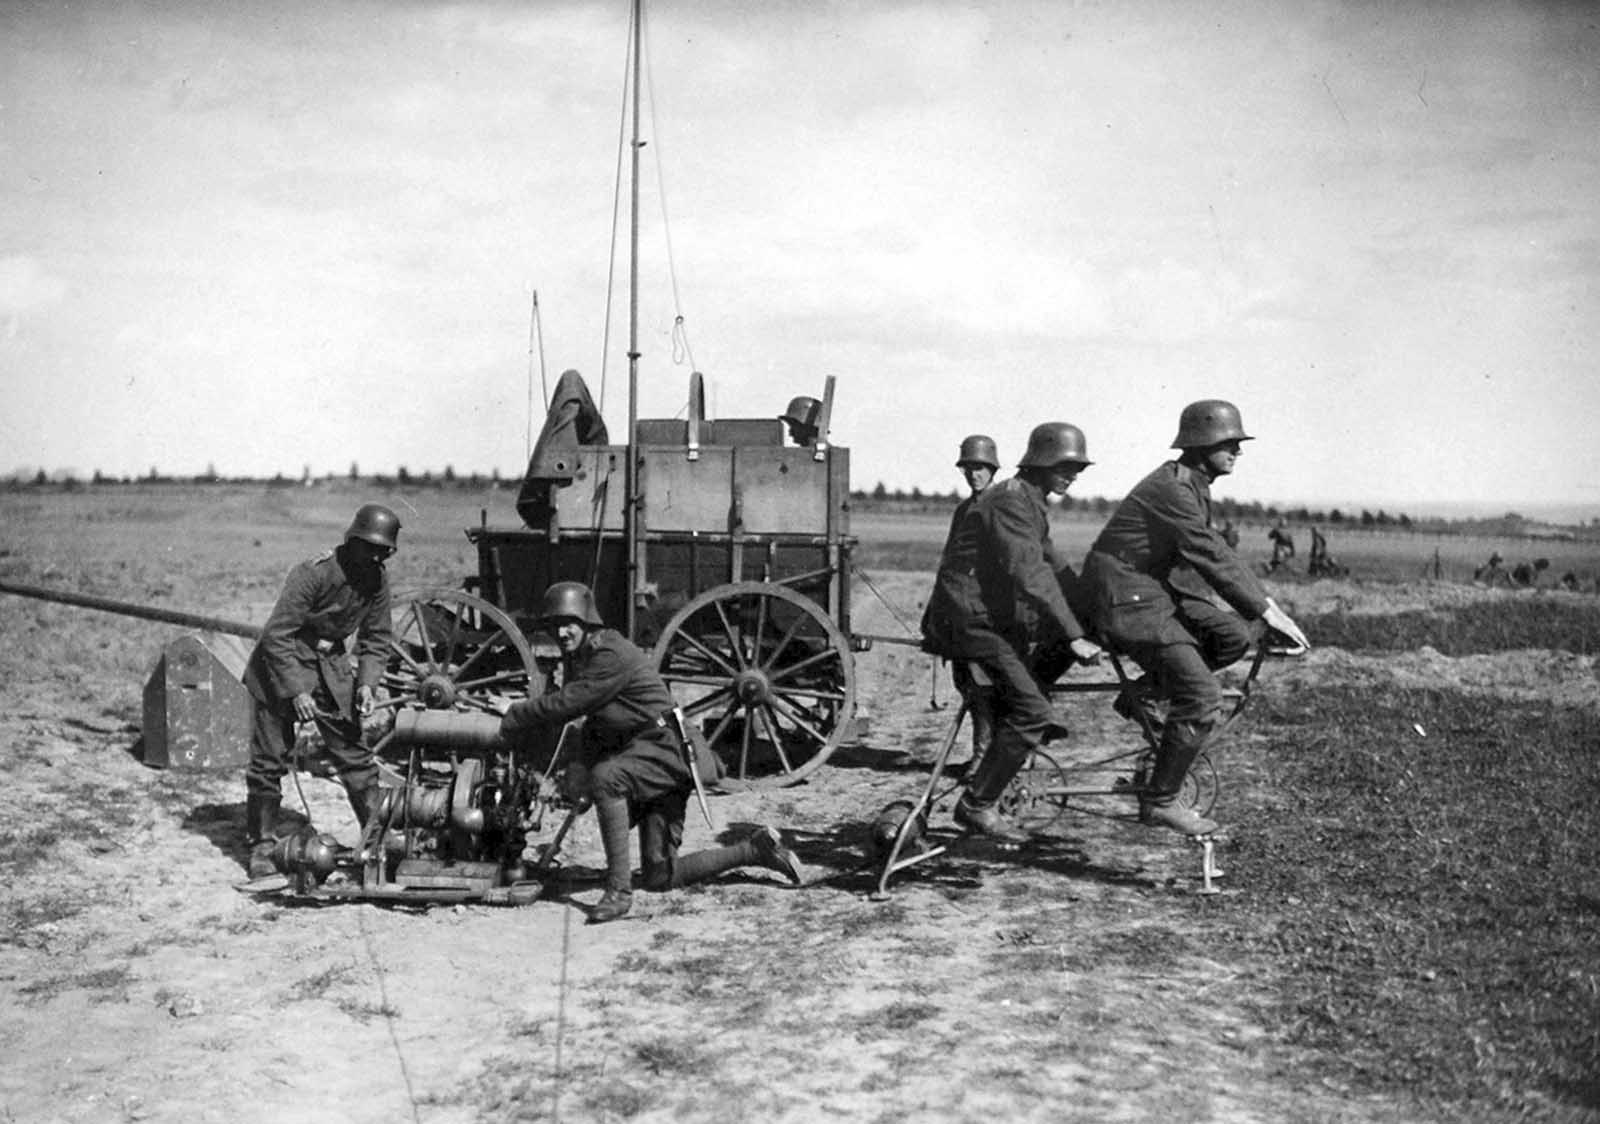 A German communications squad behind the Western front, setting up using a tandem bicycle power generator to power a light radio station in September of 1917.